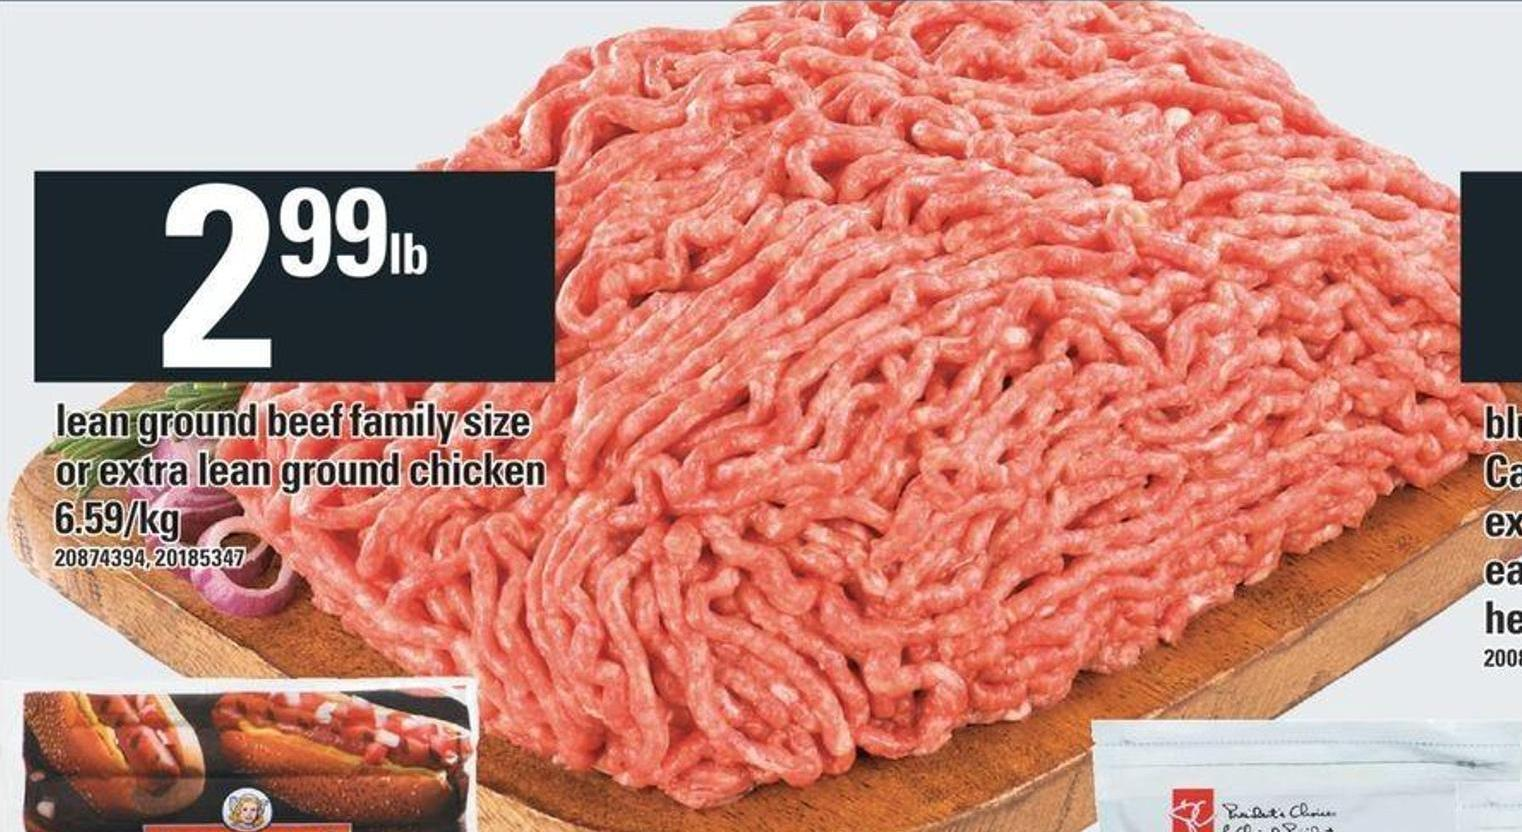 Lean Ground Beef Family Size Or Extra Lean Ground Chicken